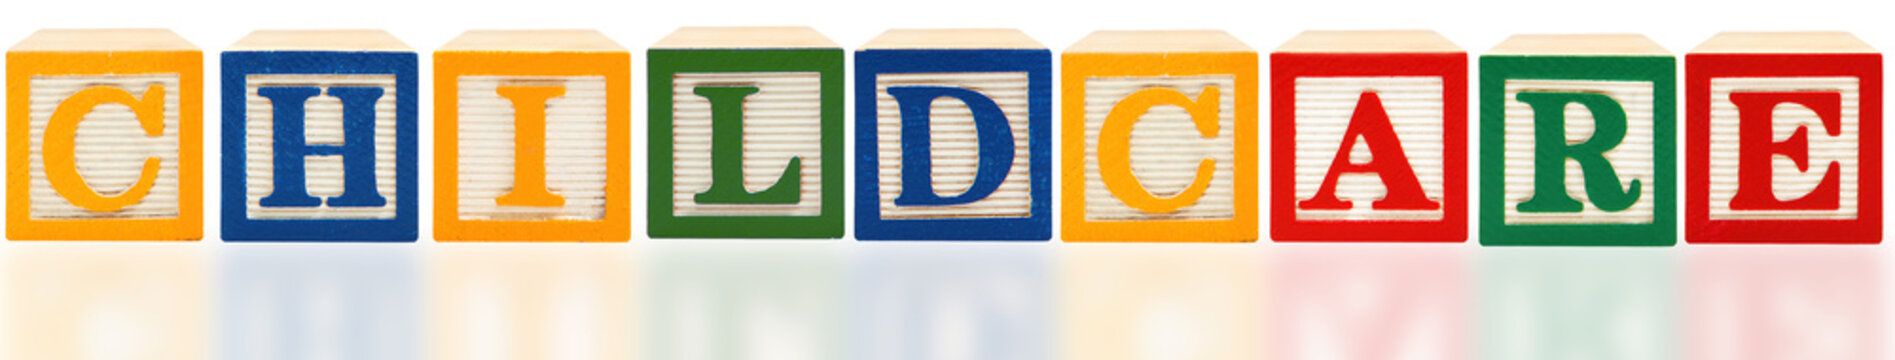 Childcare spelled out with Alphabet Blocks